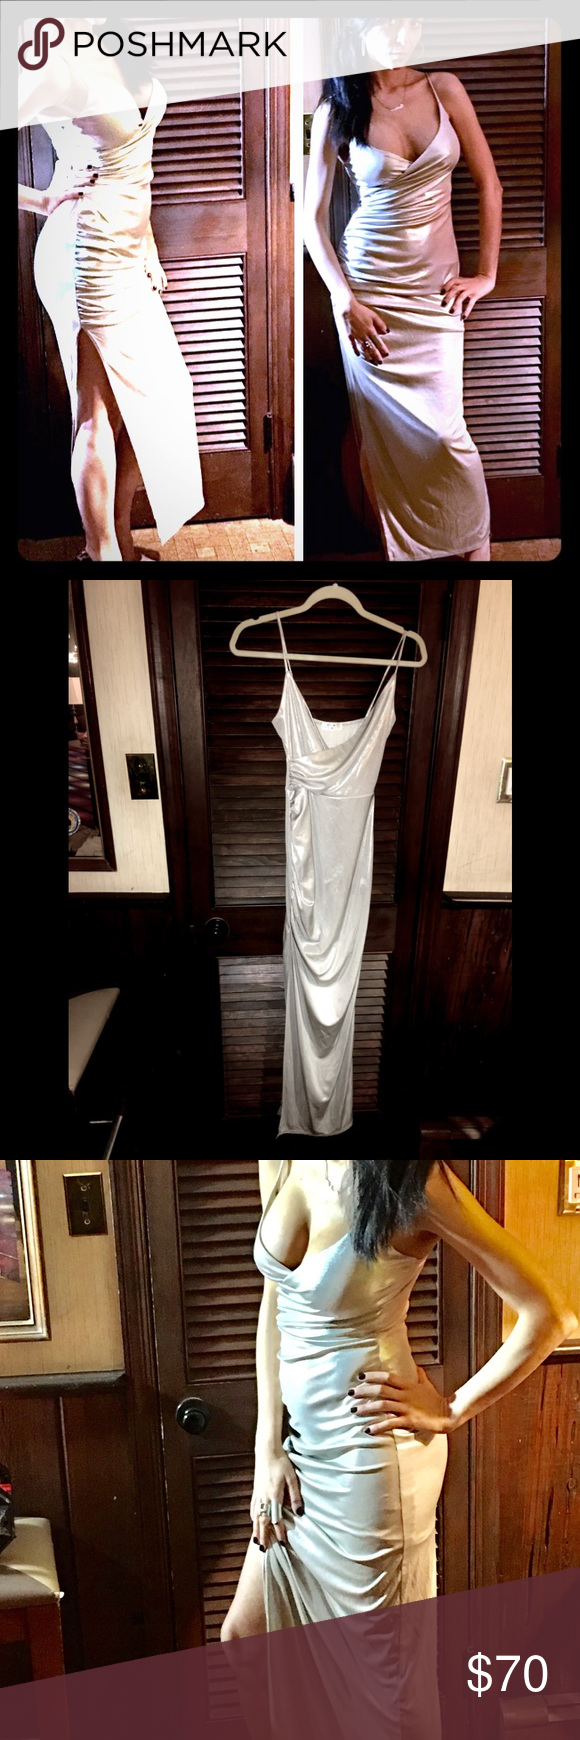 NWOT Blue Blush metallic side slit, ruched maxi NWOT low cut silver metallic gown with spaghetti straps, side slit and ruching on opposite side. Purchased from DollsKill for an event never worn, great piece, new condition. 92% polyester and 8% spandex. Metallic color, very fitted, ruched on one side to accentuate curves and create an hourglass silhouette. Very flattering. Great for cocktail event with a pump or sandal; ankle boots with leather jacket. Lined from top to slit/ slip size…